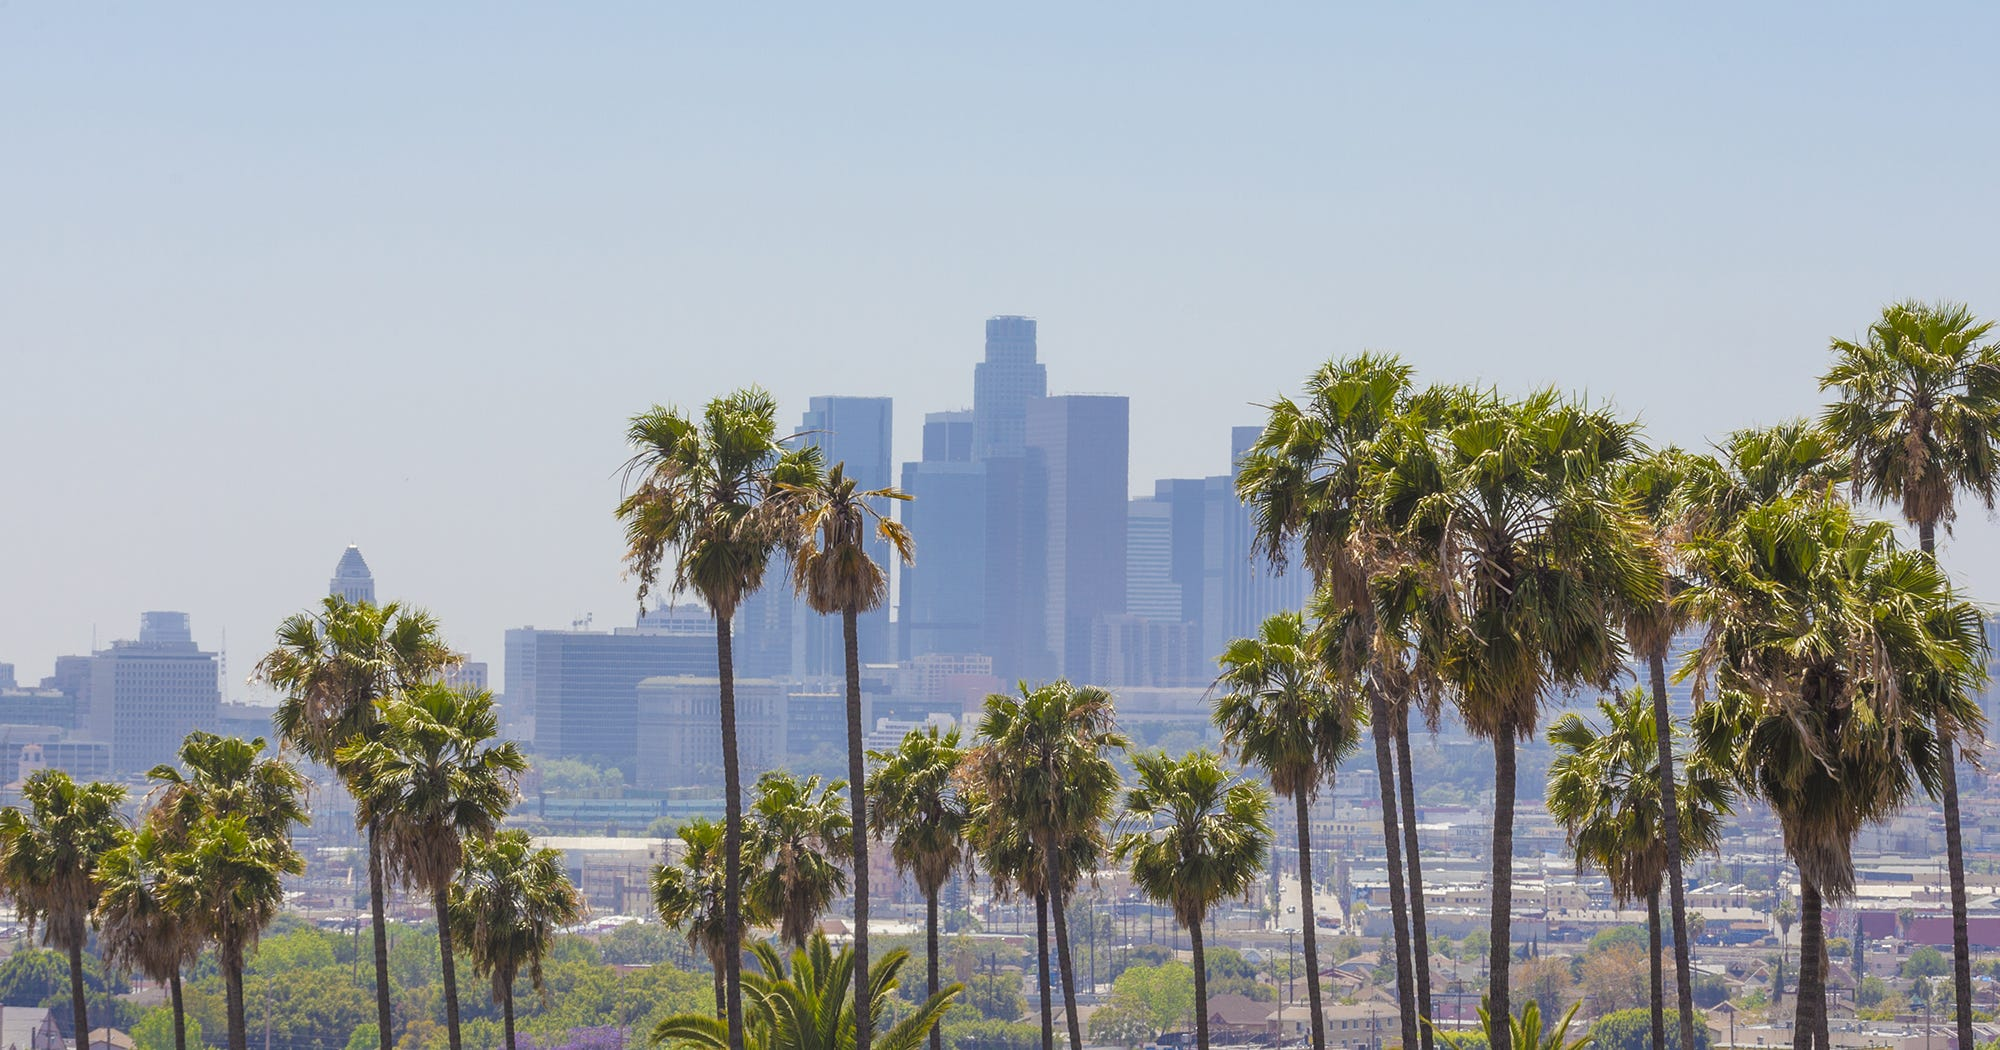 Where To Hang Out In L.A. — Based On Your Personality